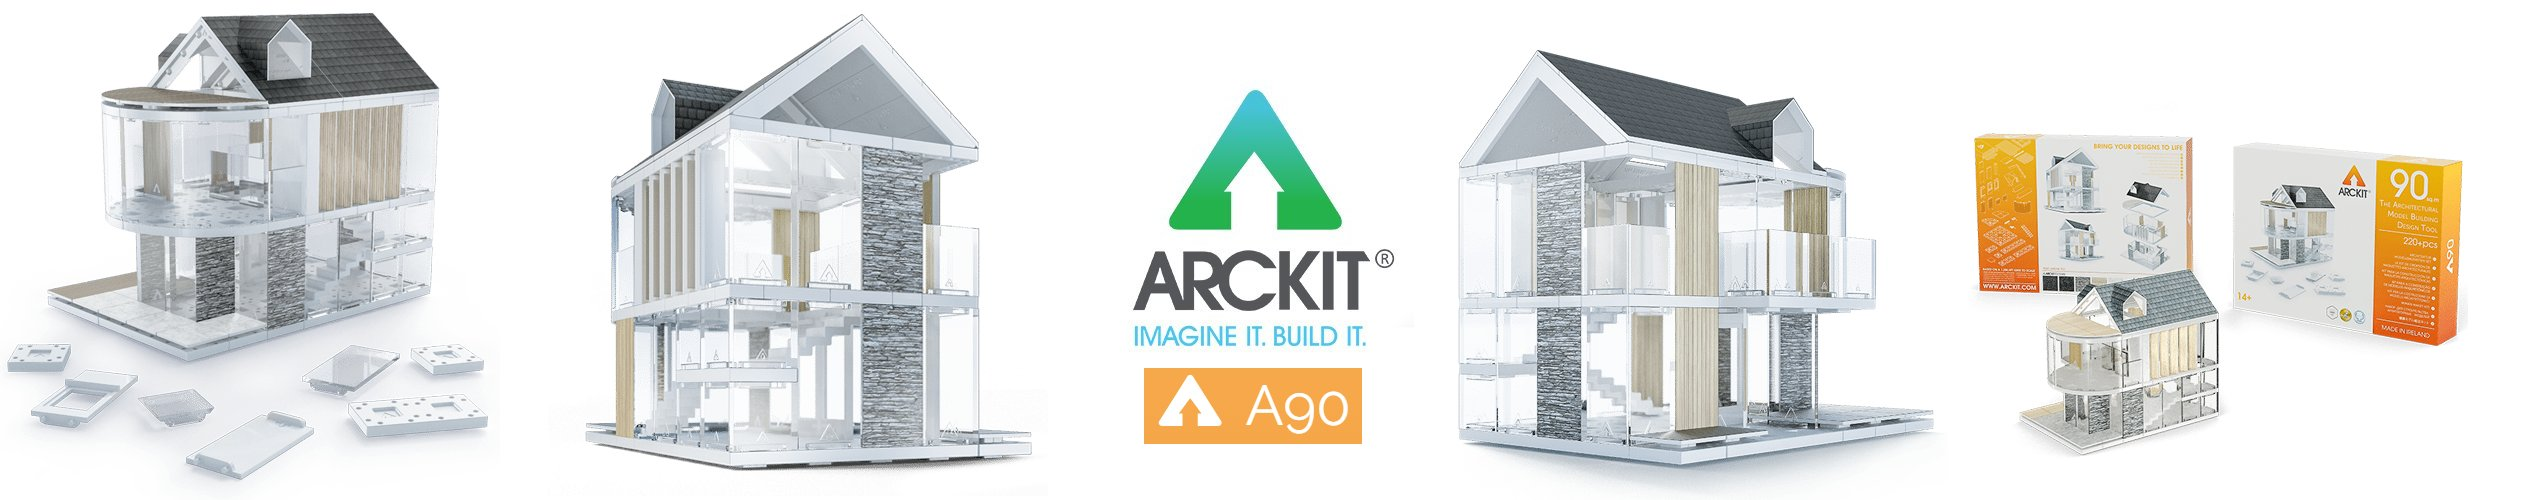 Arckit Architecture Modelling System Australia A90